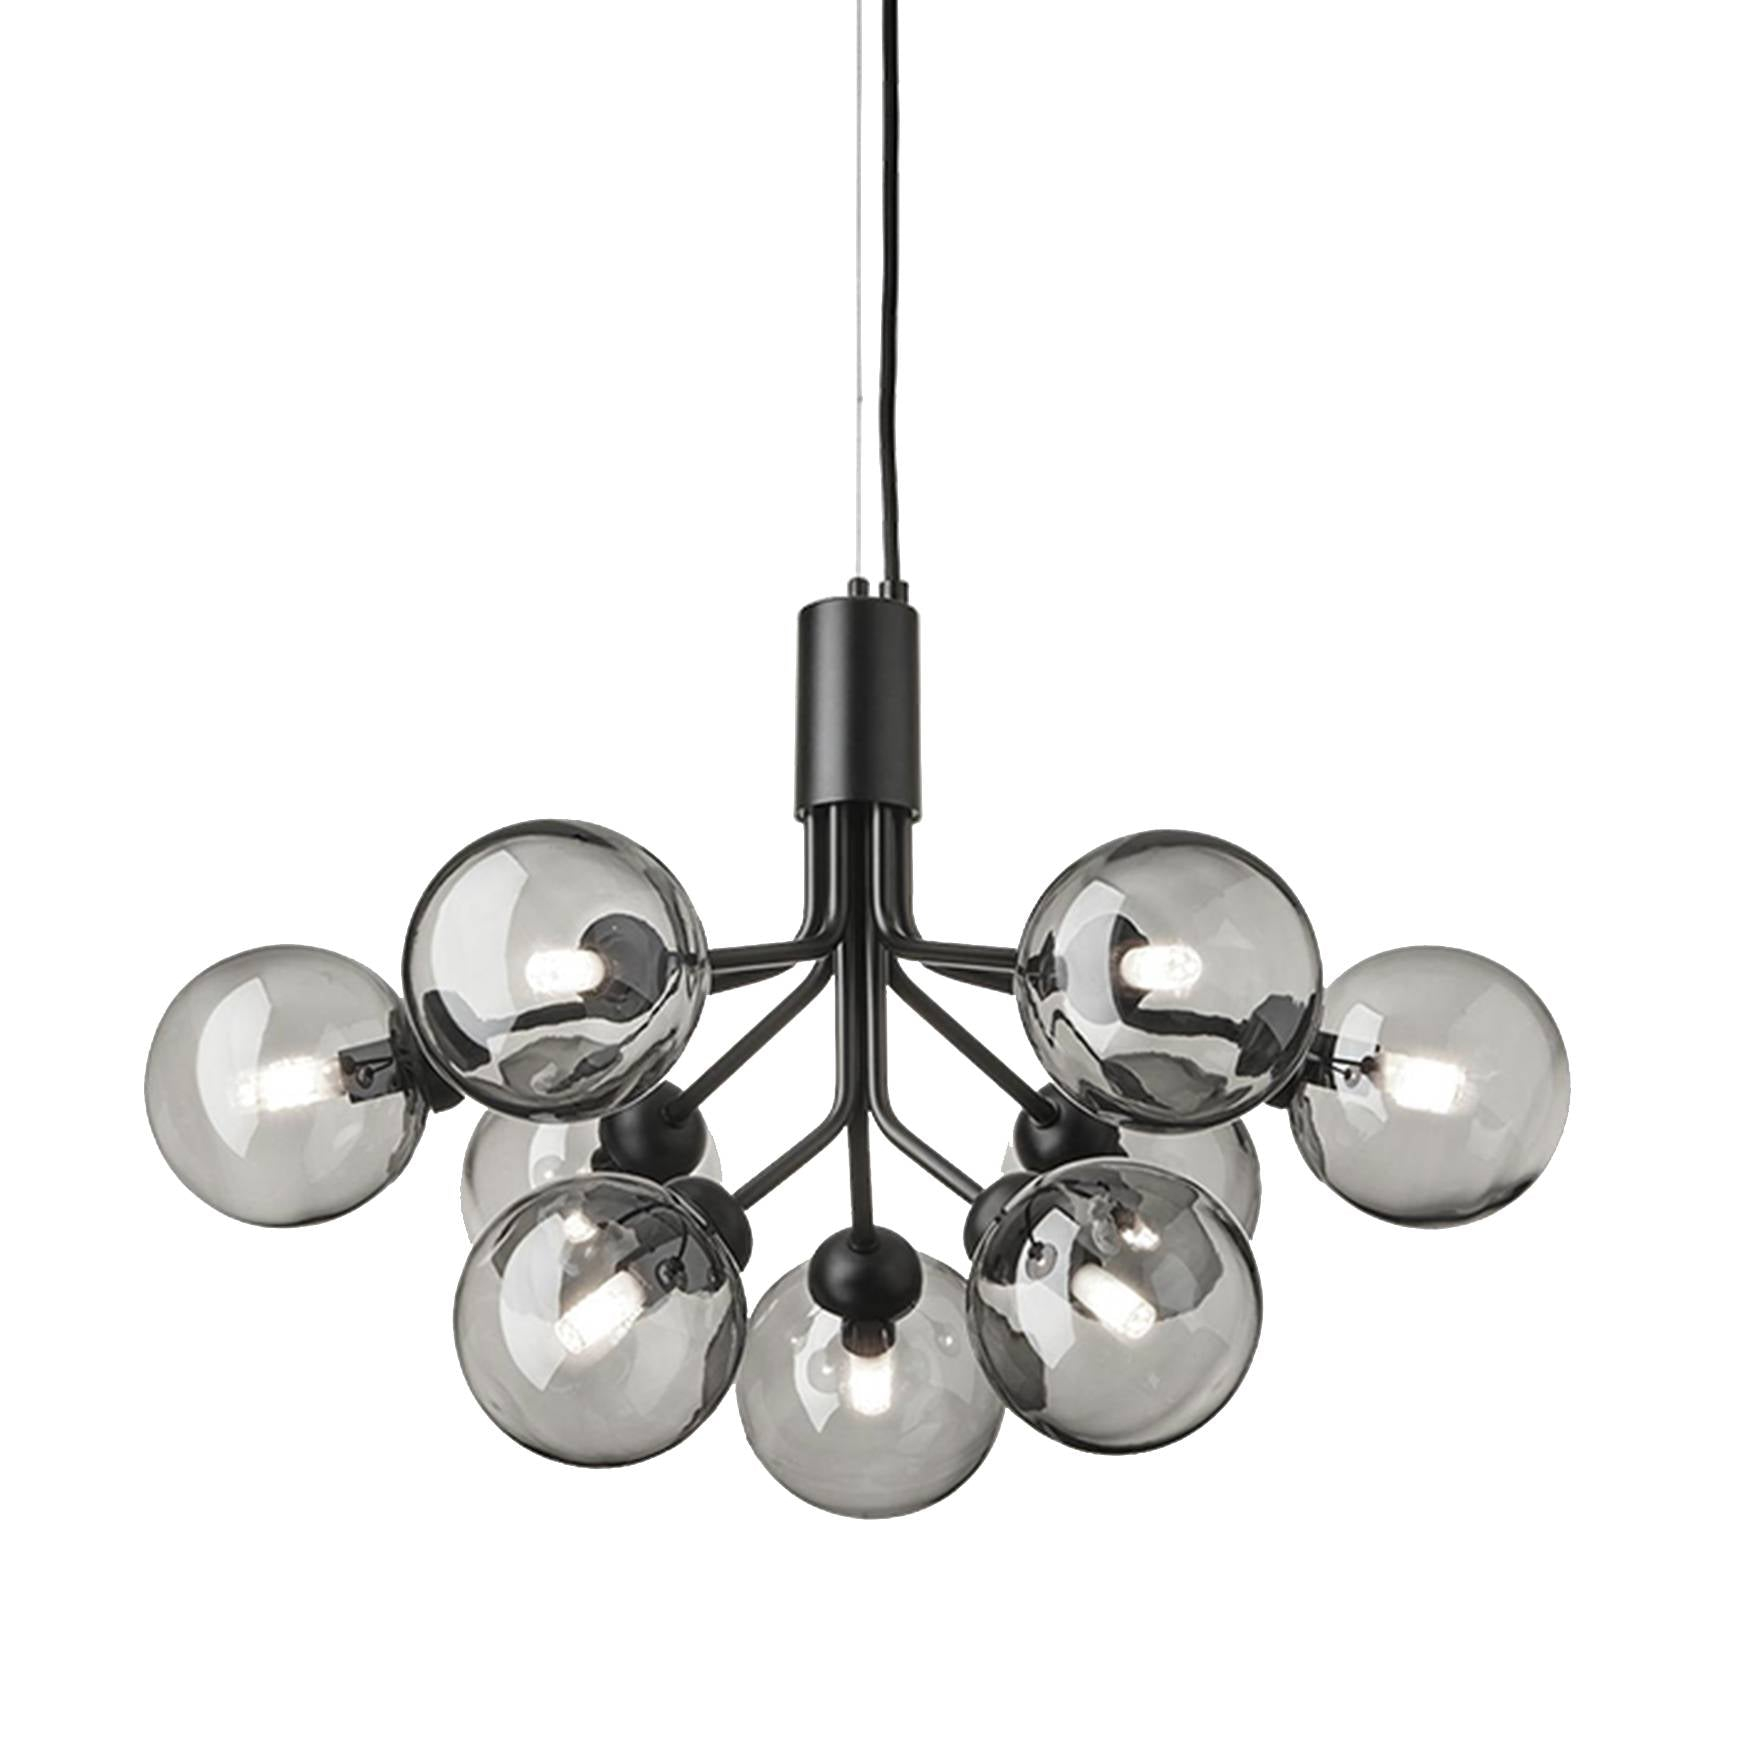 Apiales 9 Chandelier: Satin Black + Smoked Black